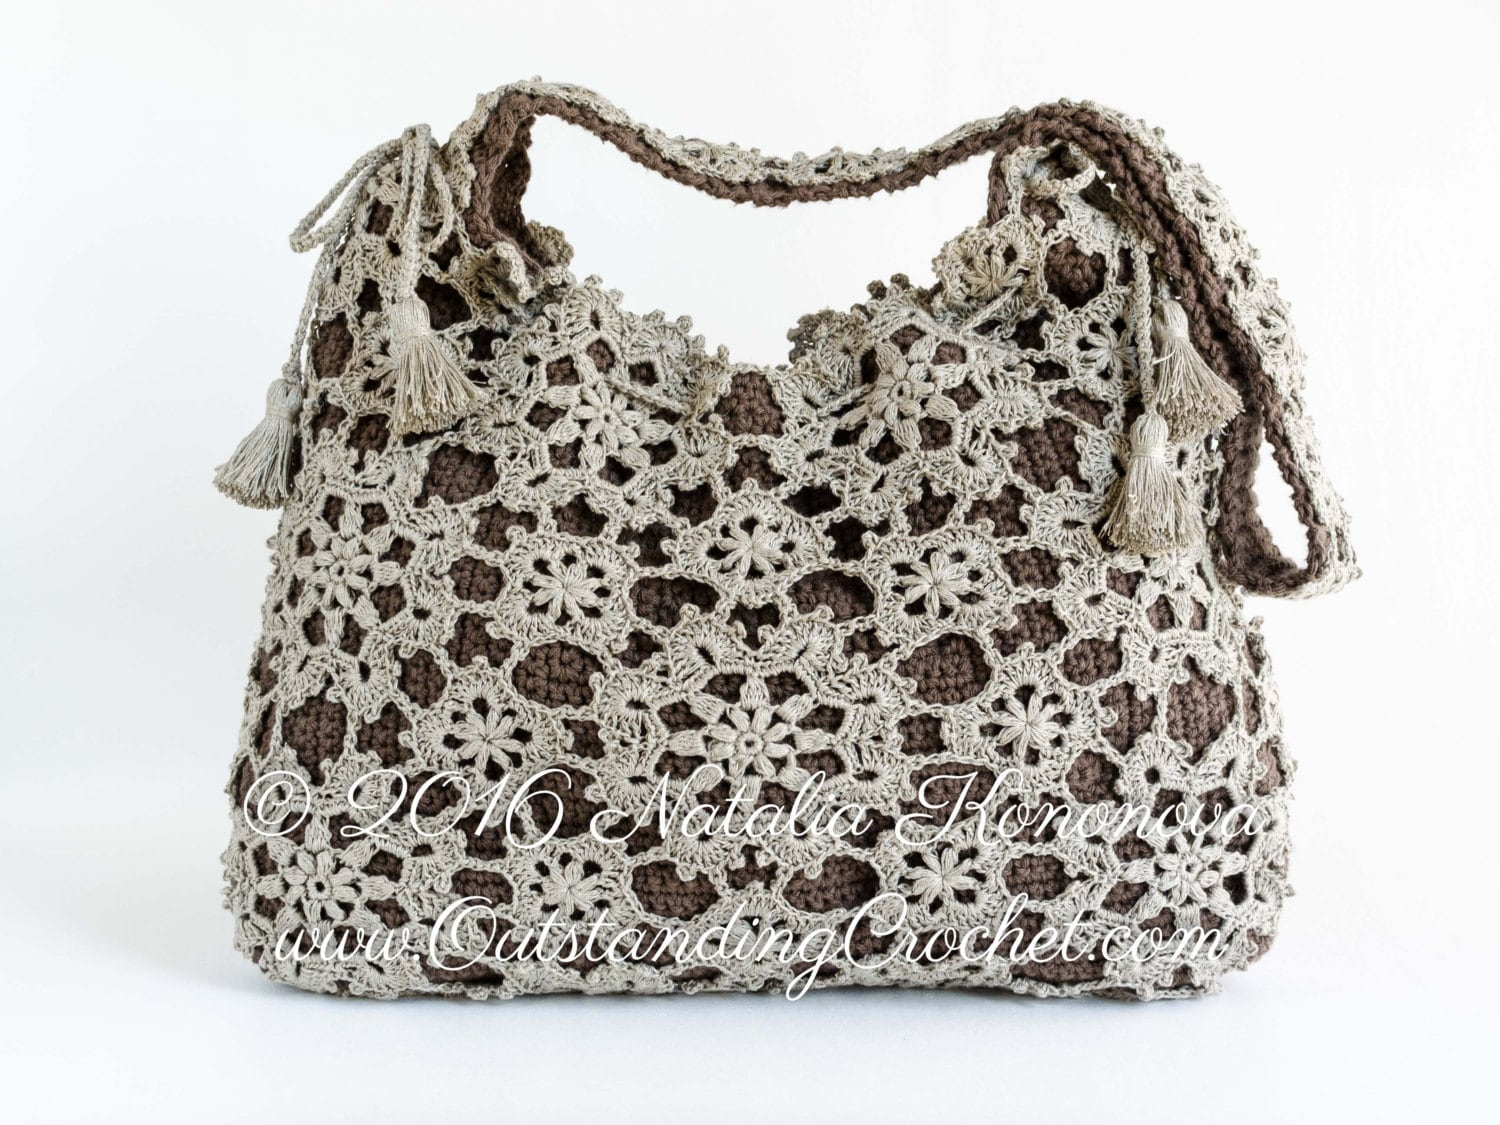 Crochet Handbag Pattern : ... Evening Bags Crossbody Bags Hobo Bags Shoulder Bags Top Handle Bags